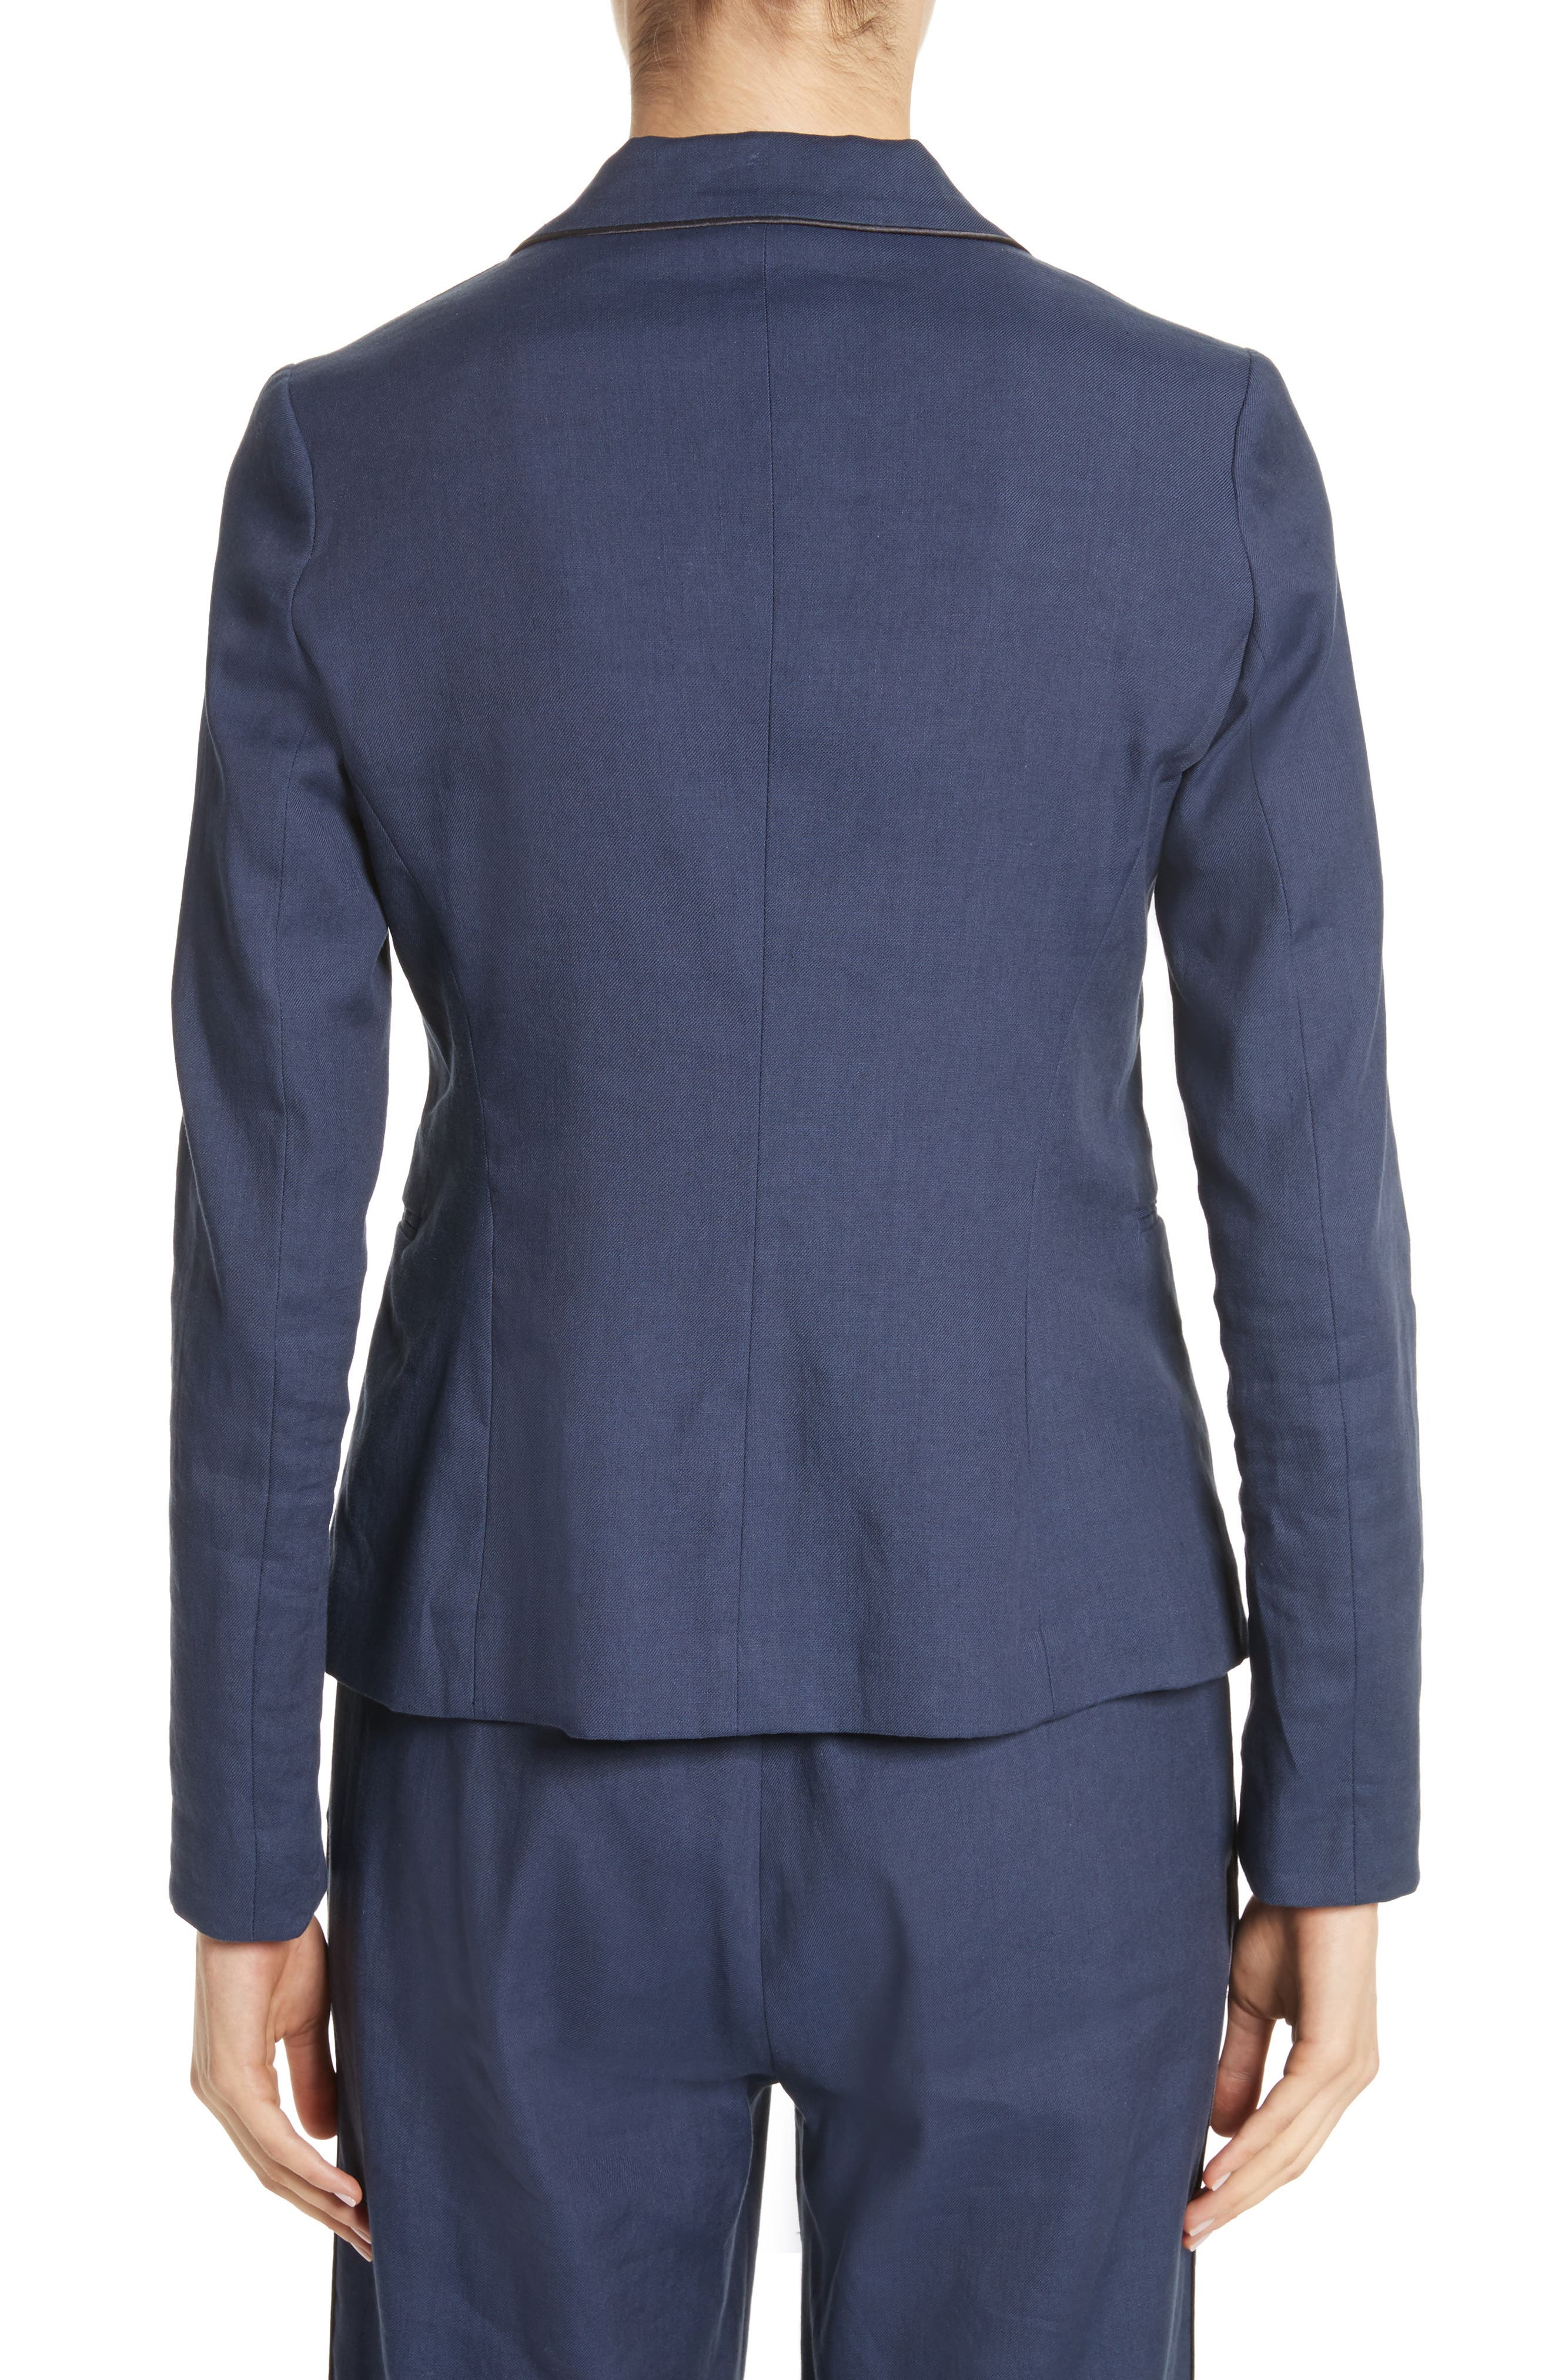 Piped Linen & Cotton Blend Blazer,                             Alternate thumbnail 2, color,                             Navy